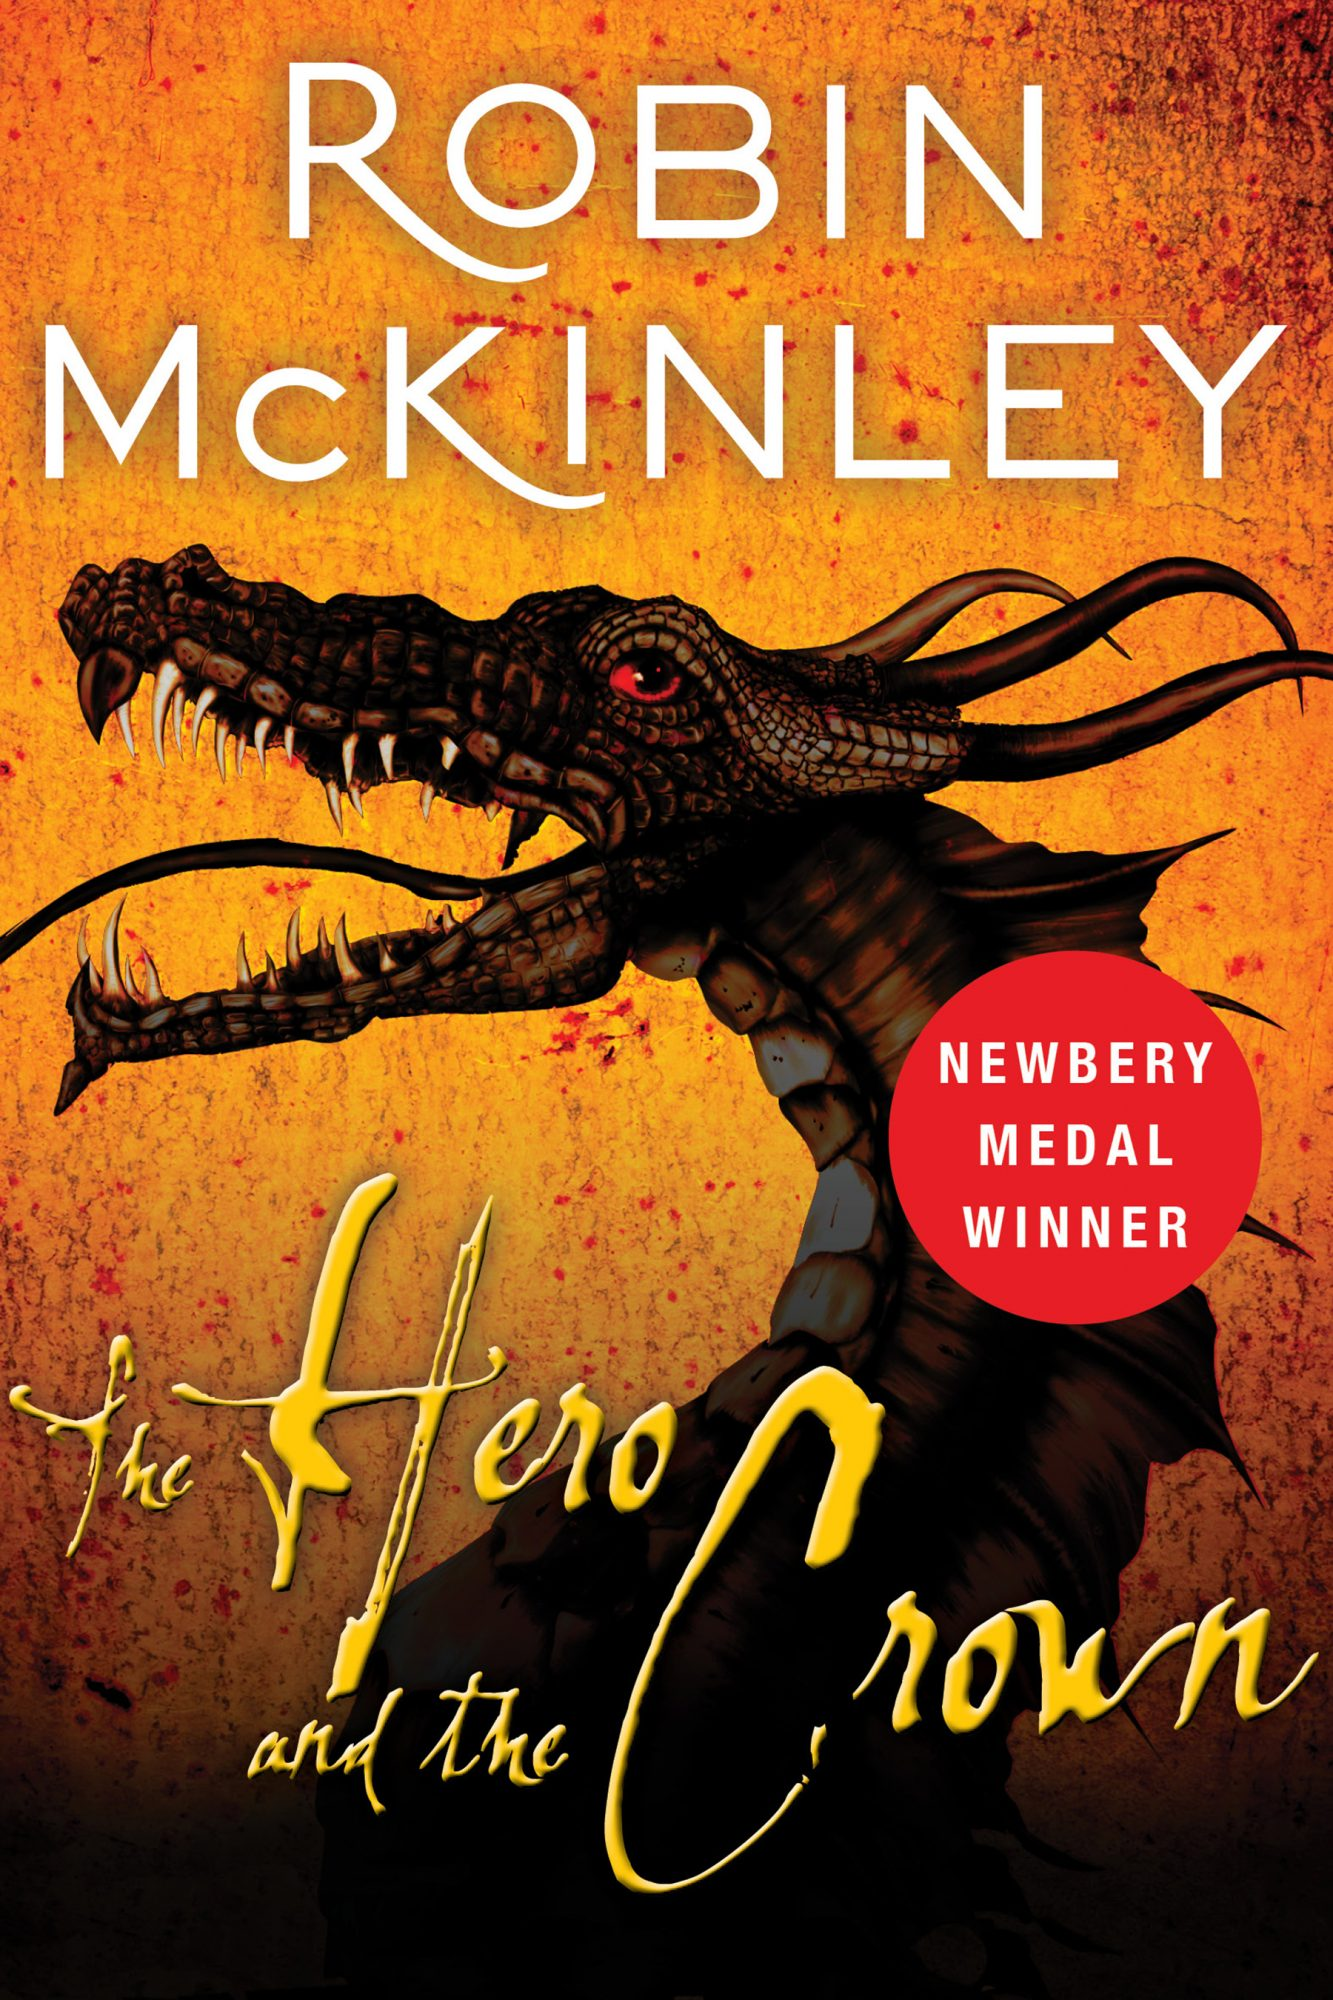 The Hero and the CrownNovel by Robin McKinleyPublisher: HarperCollins